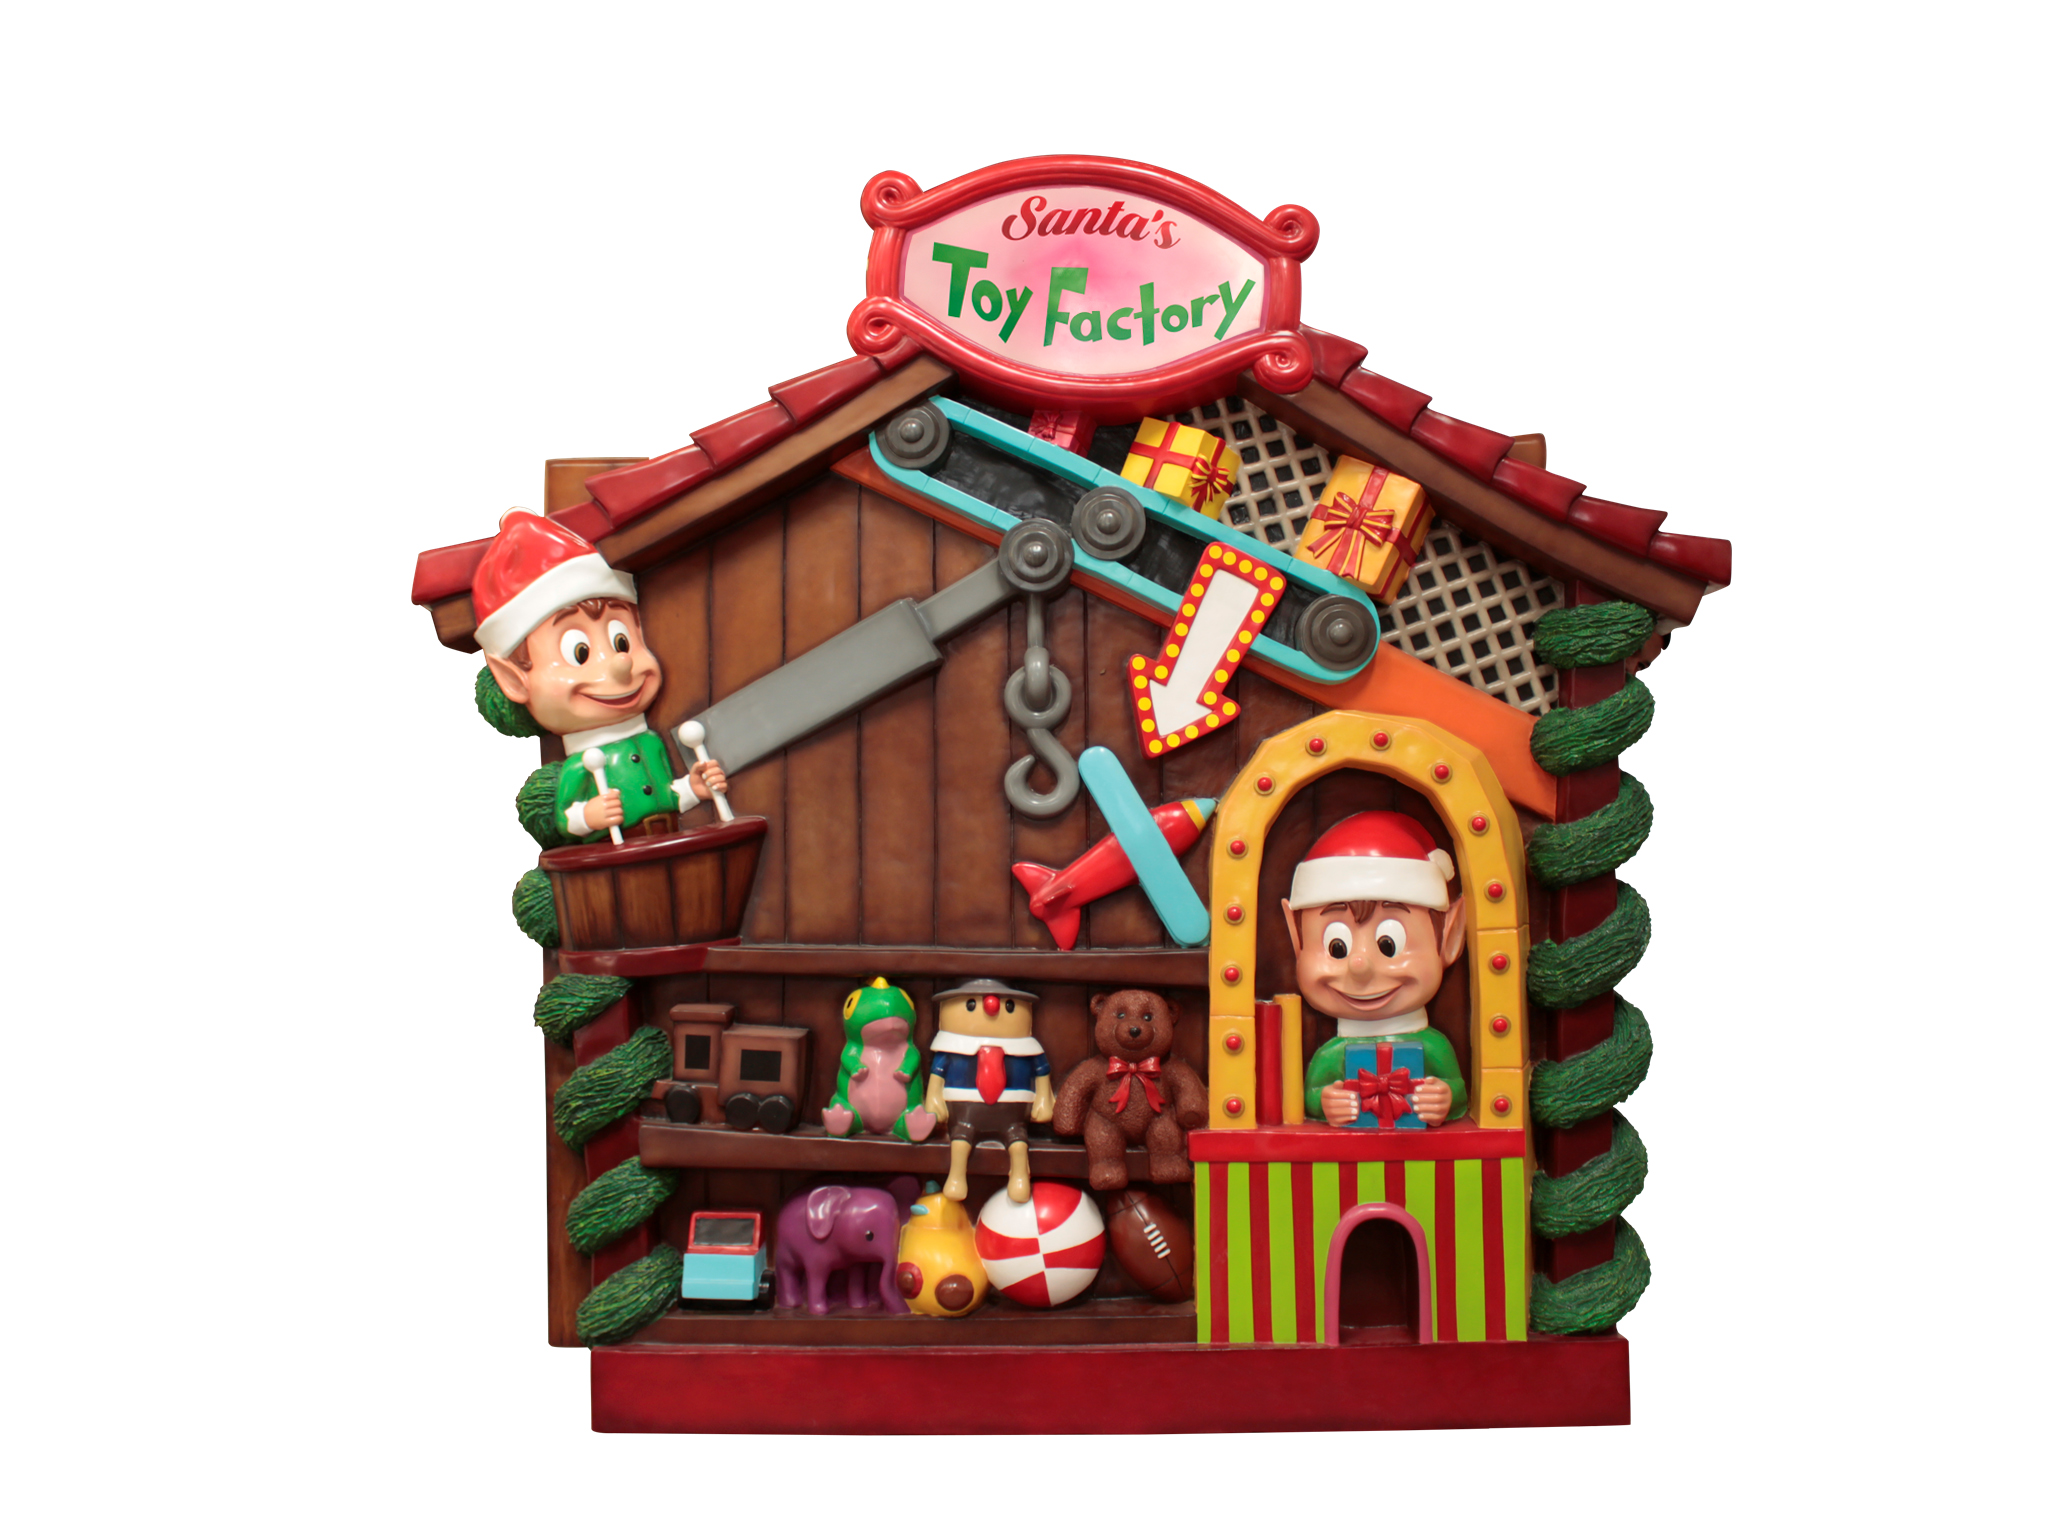 Toy Factory Panel